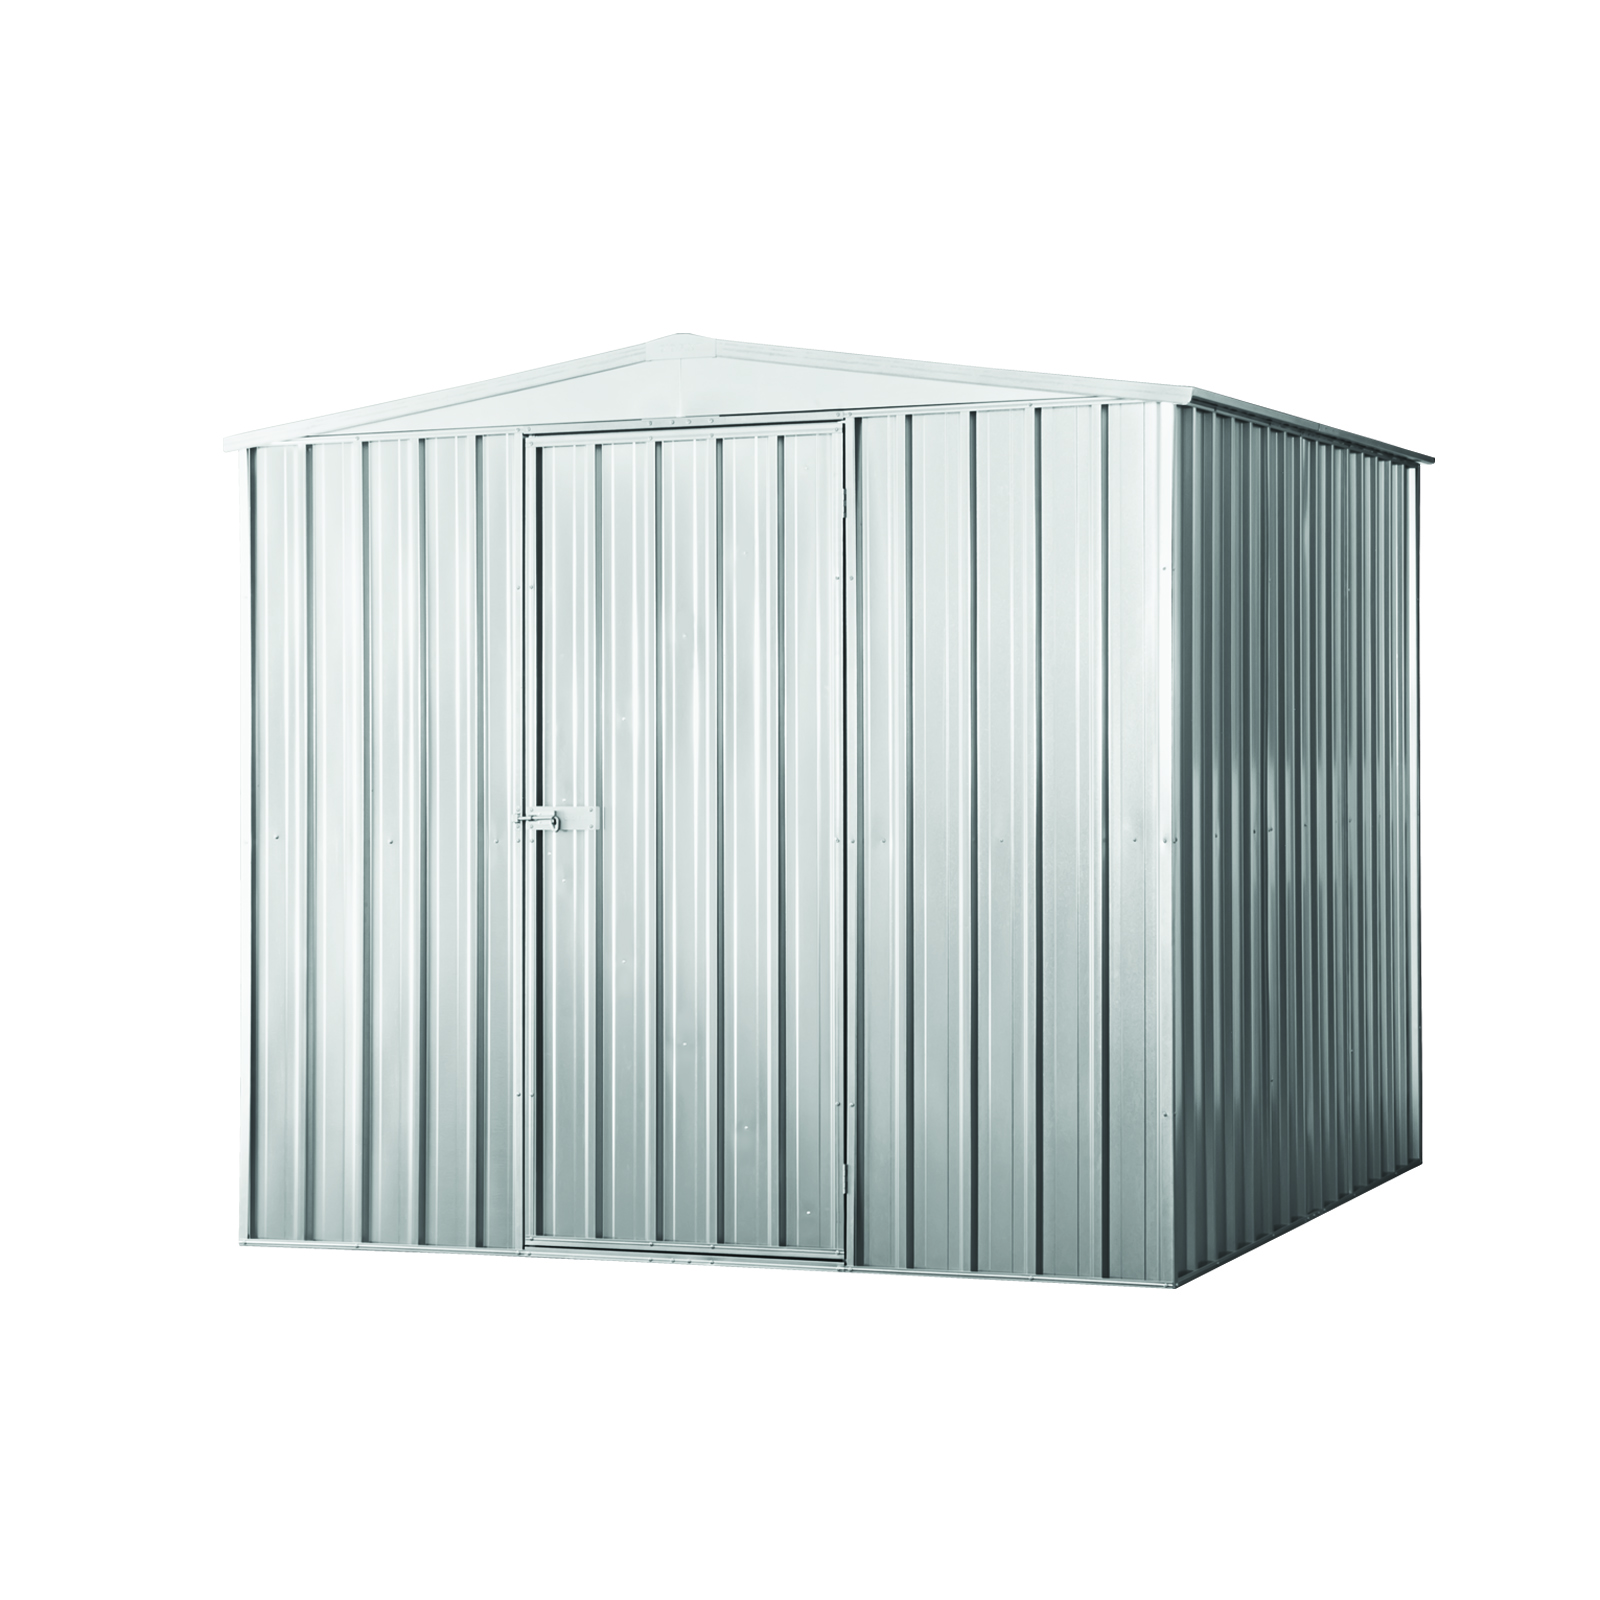 pinnacle 23 x 23 x 24m garden shed zinc